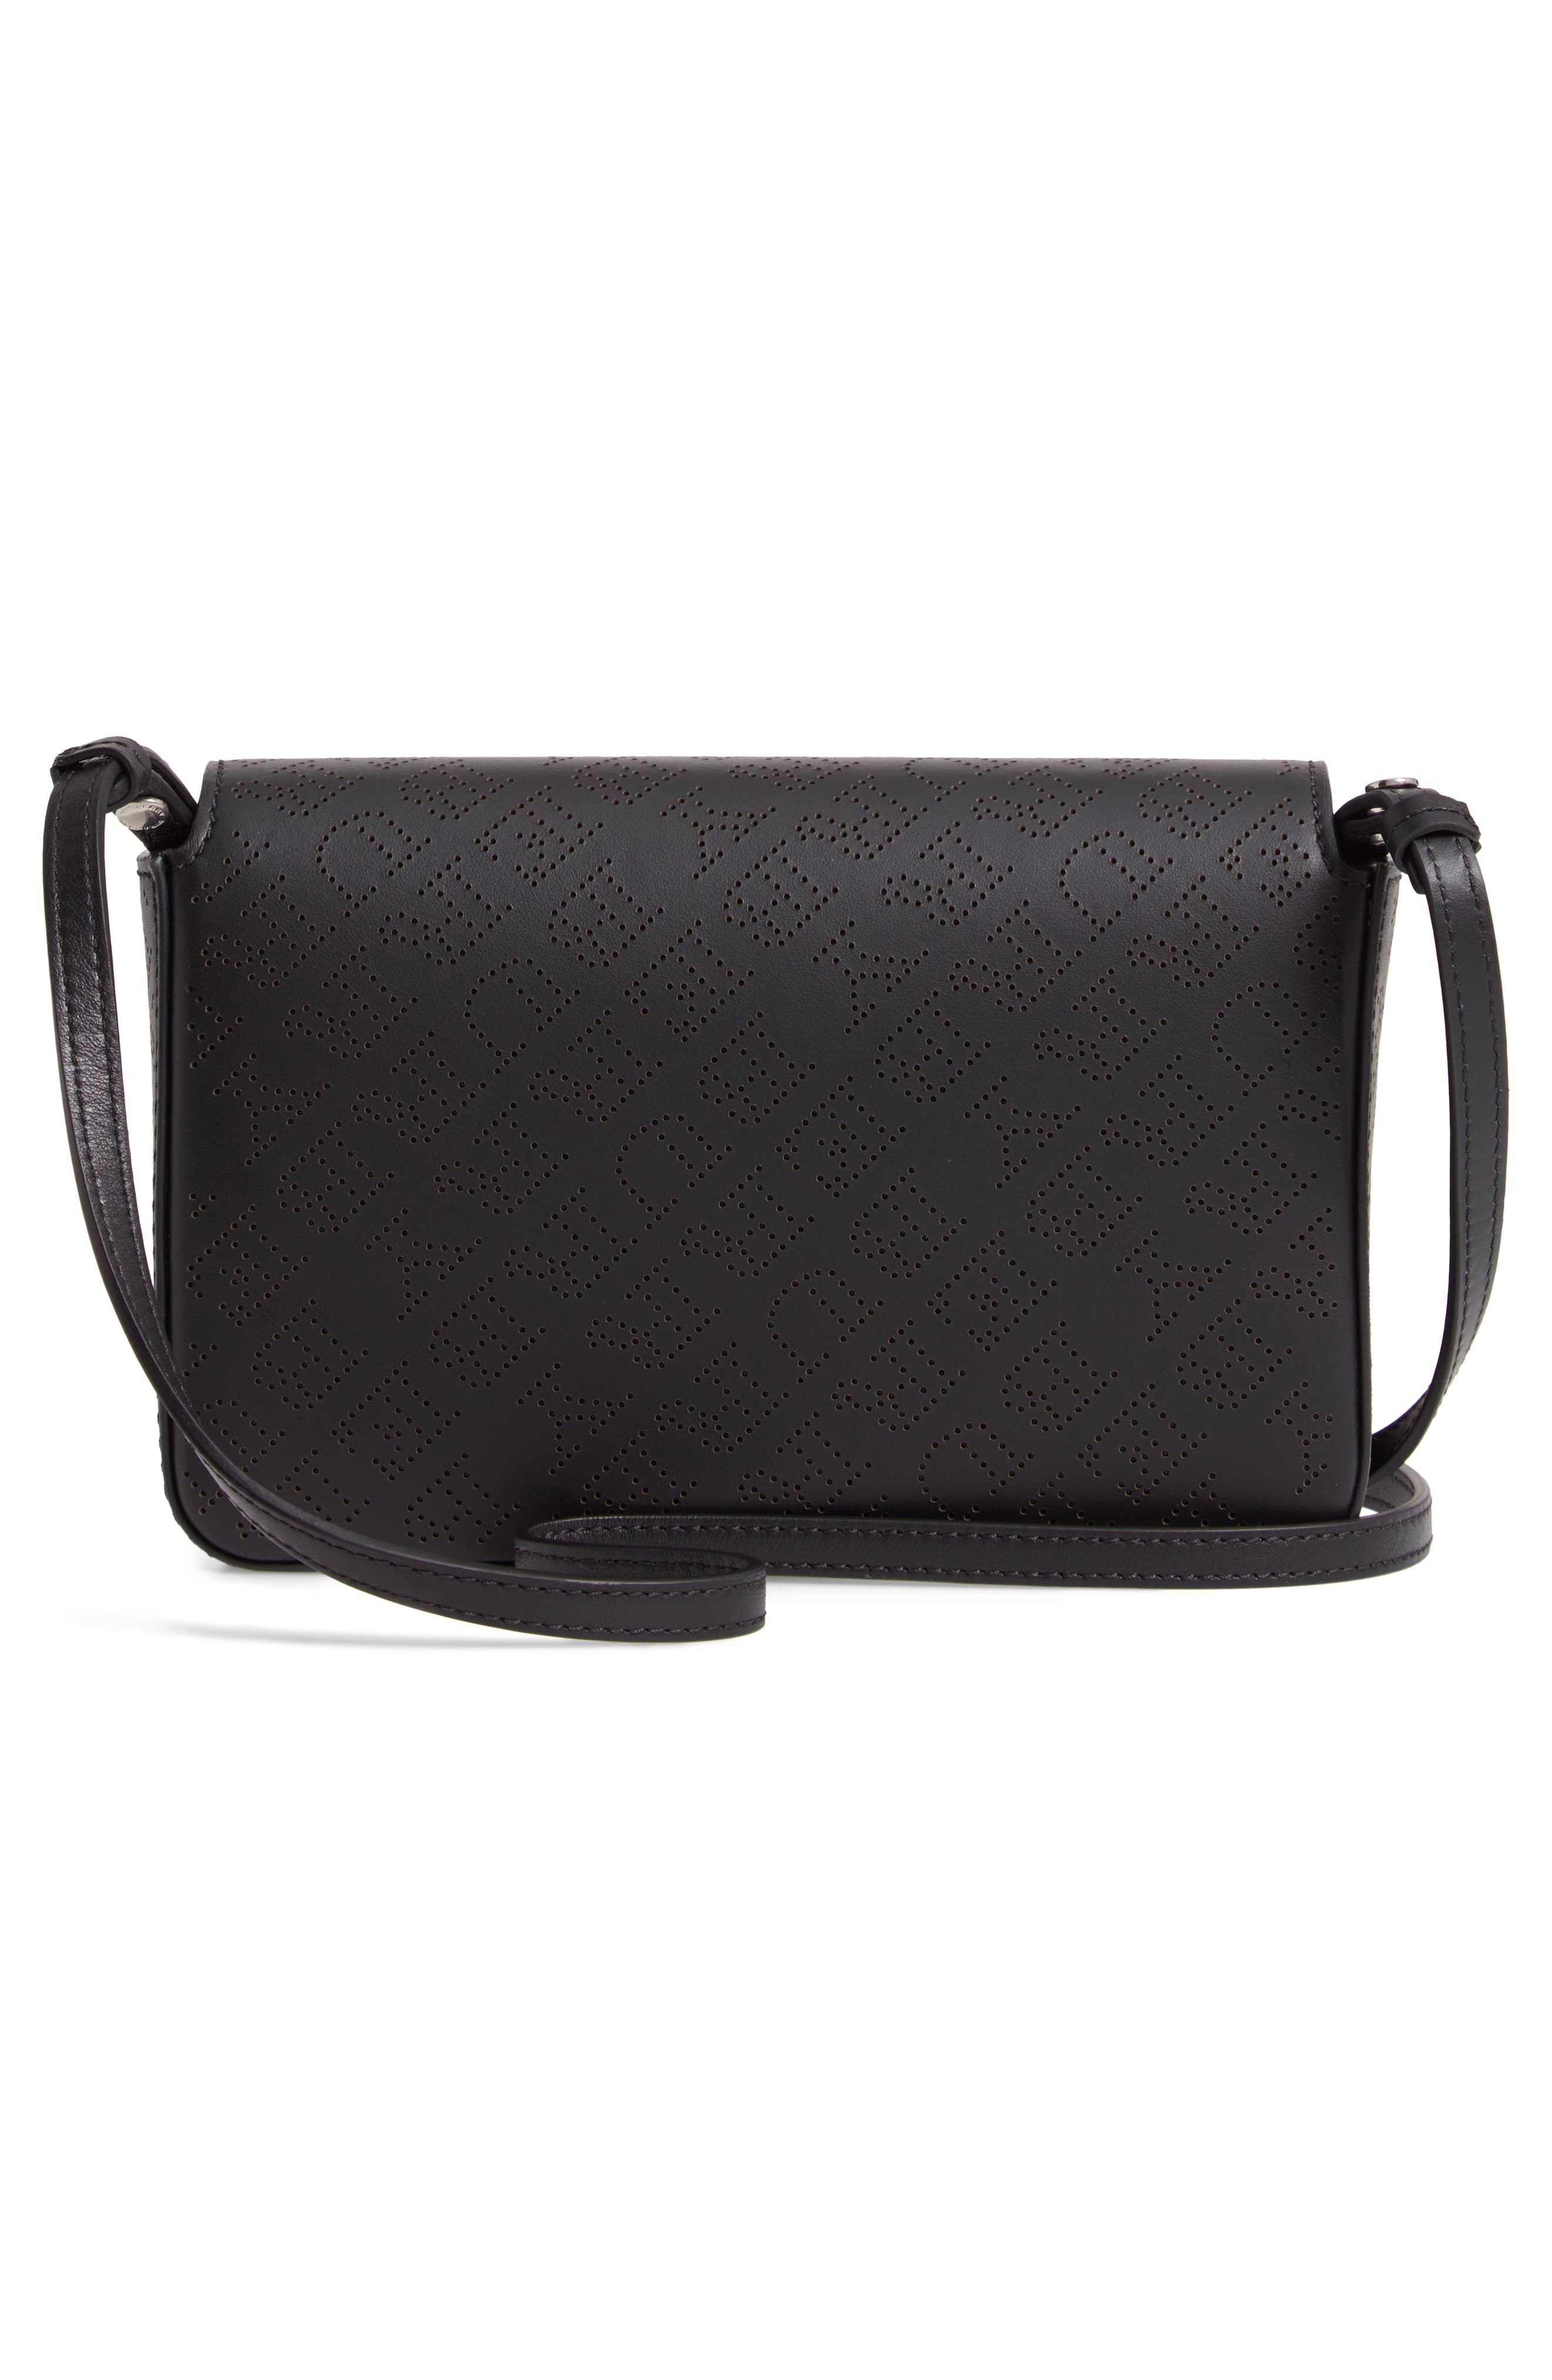 Hampshire Perforated Leather Crossbody Bag,                             Alternate thumbnail 3, color,                             BLACK